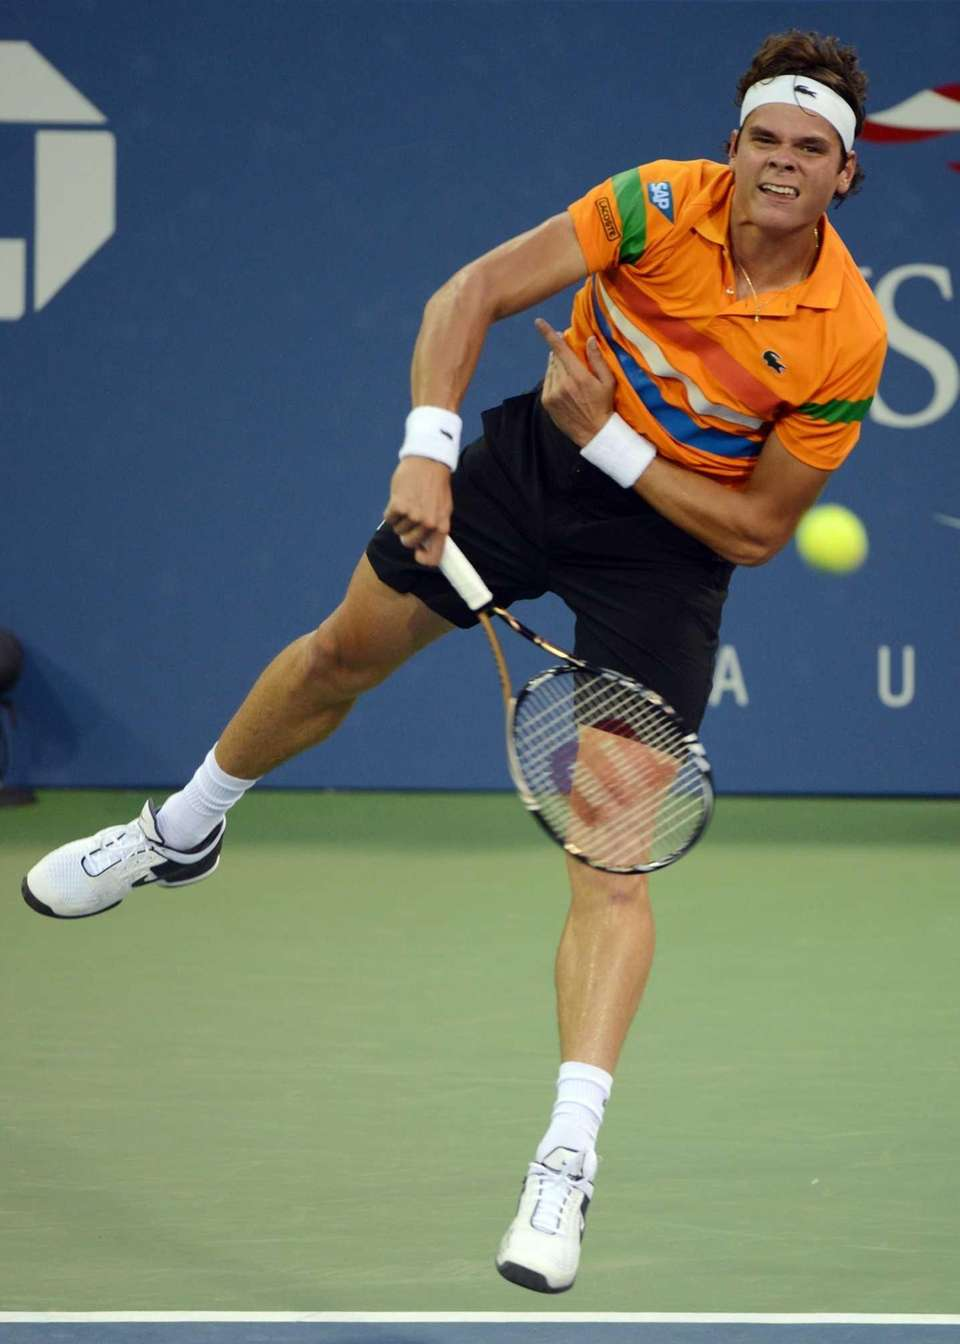 MILAS RAONIC, 22, CANADA Ranked: 15, 2013 Match